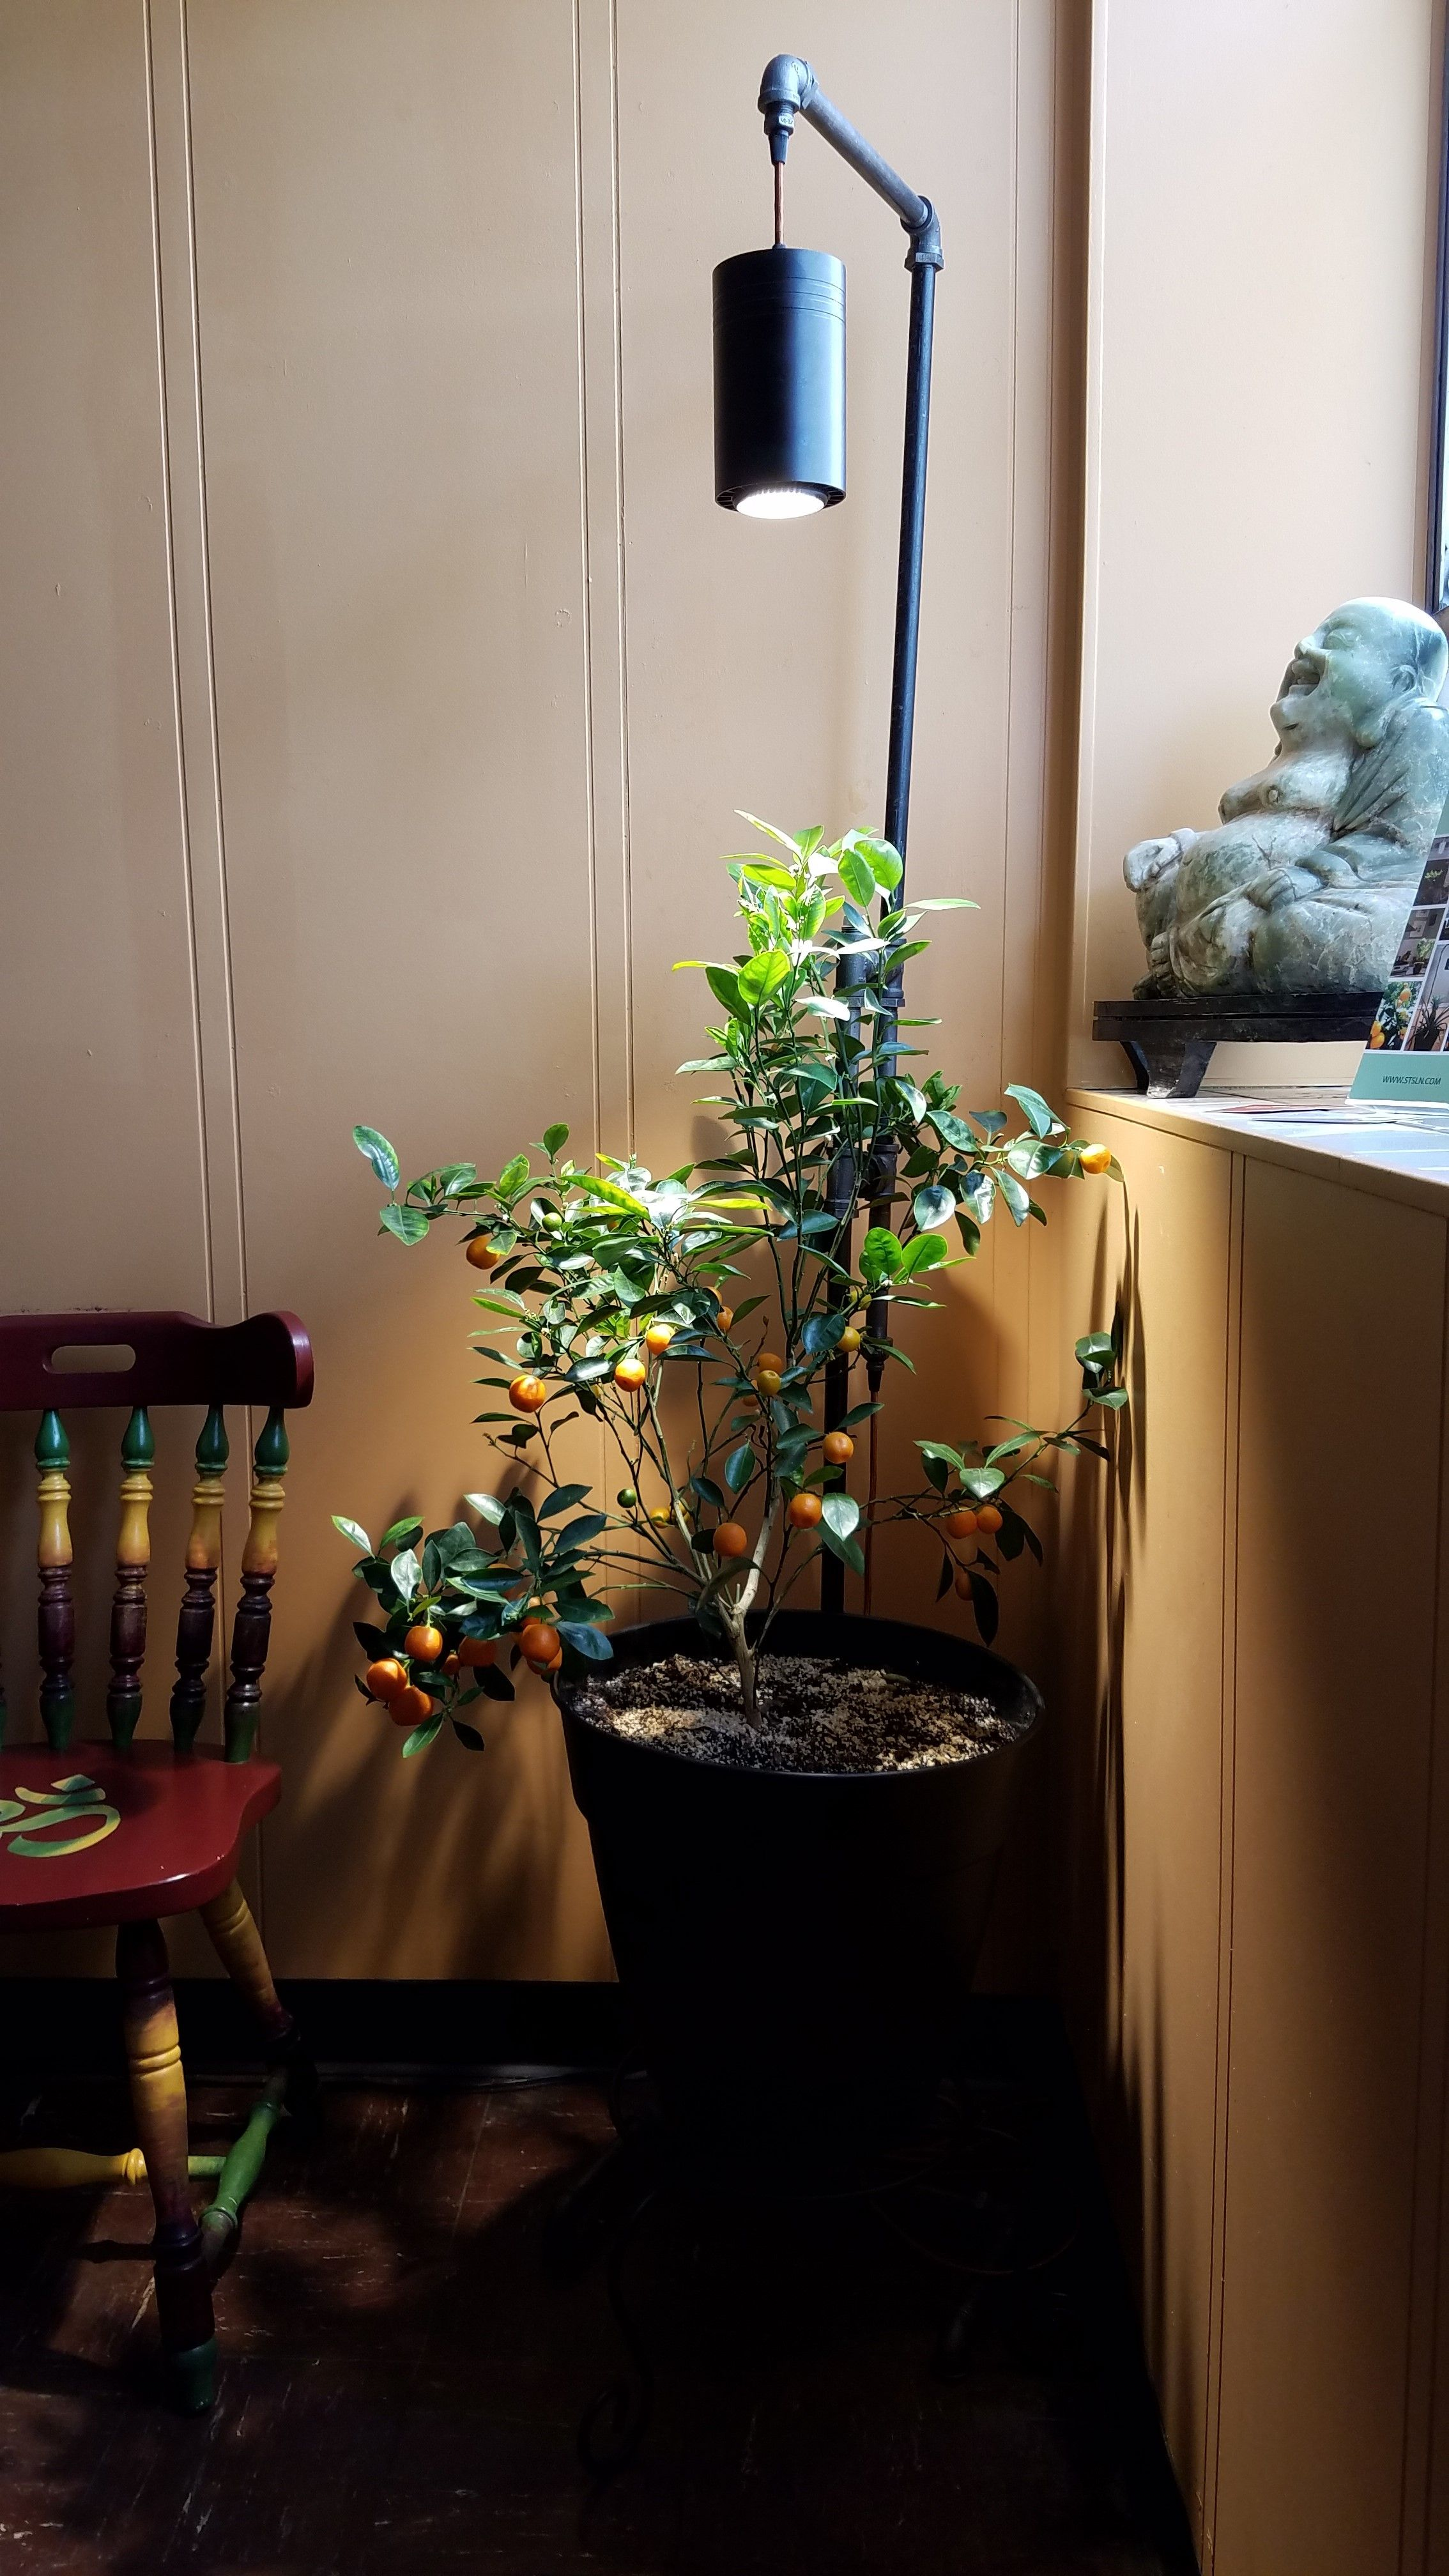 Fresh Fruit In Your Home Grow Your Own Calamondin Orange Tree In The Comfort And Security Of Your Home With Th Indoor Plant Lights Grow Lights Plant Lighting